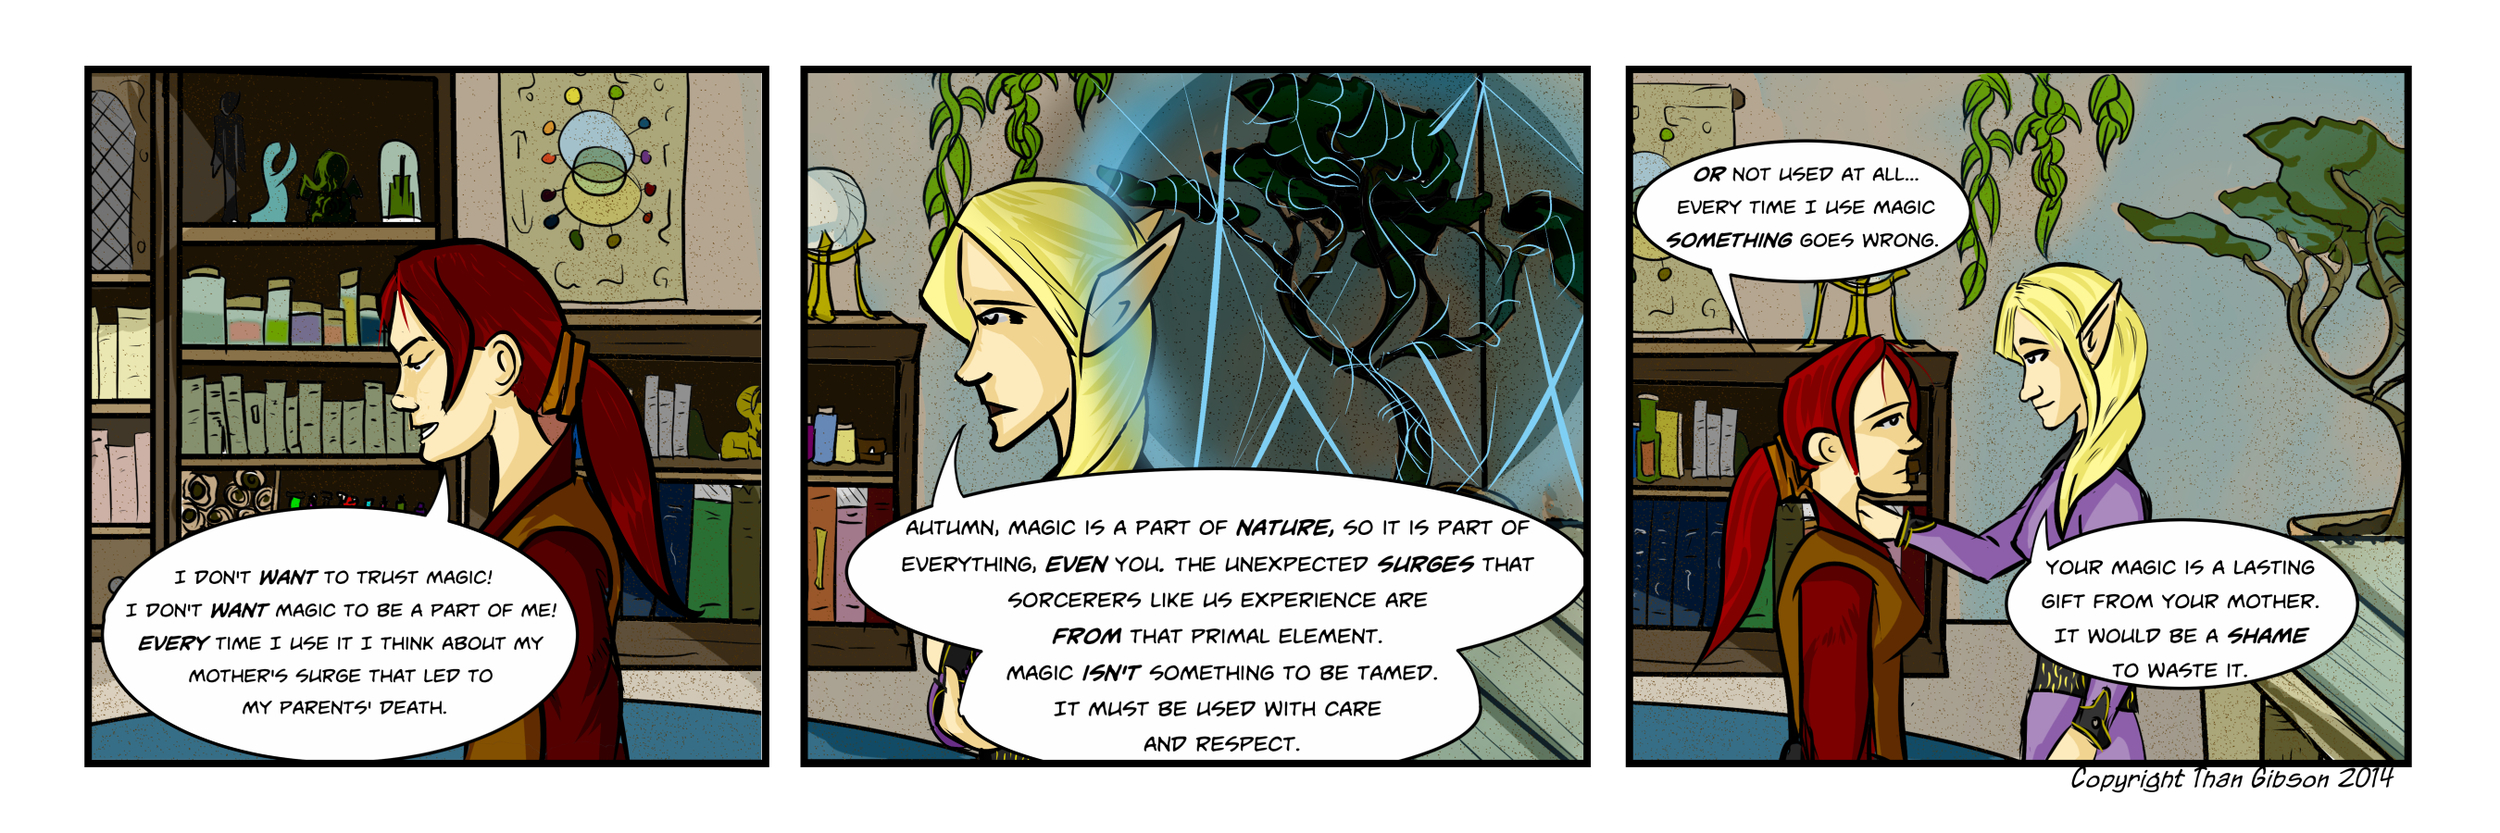 Strip 10 - Click the image for a larger view!